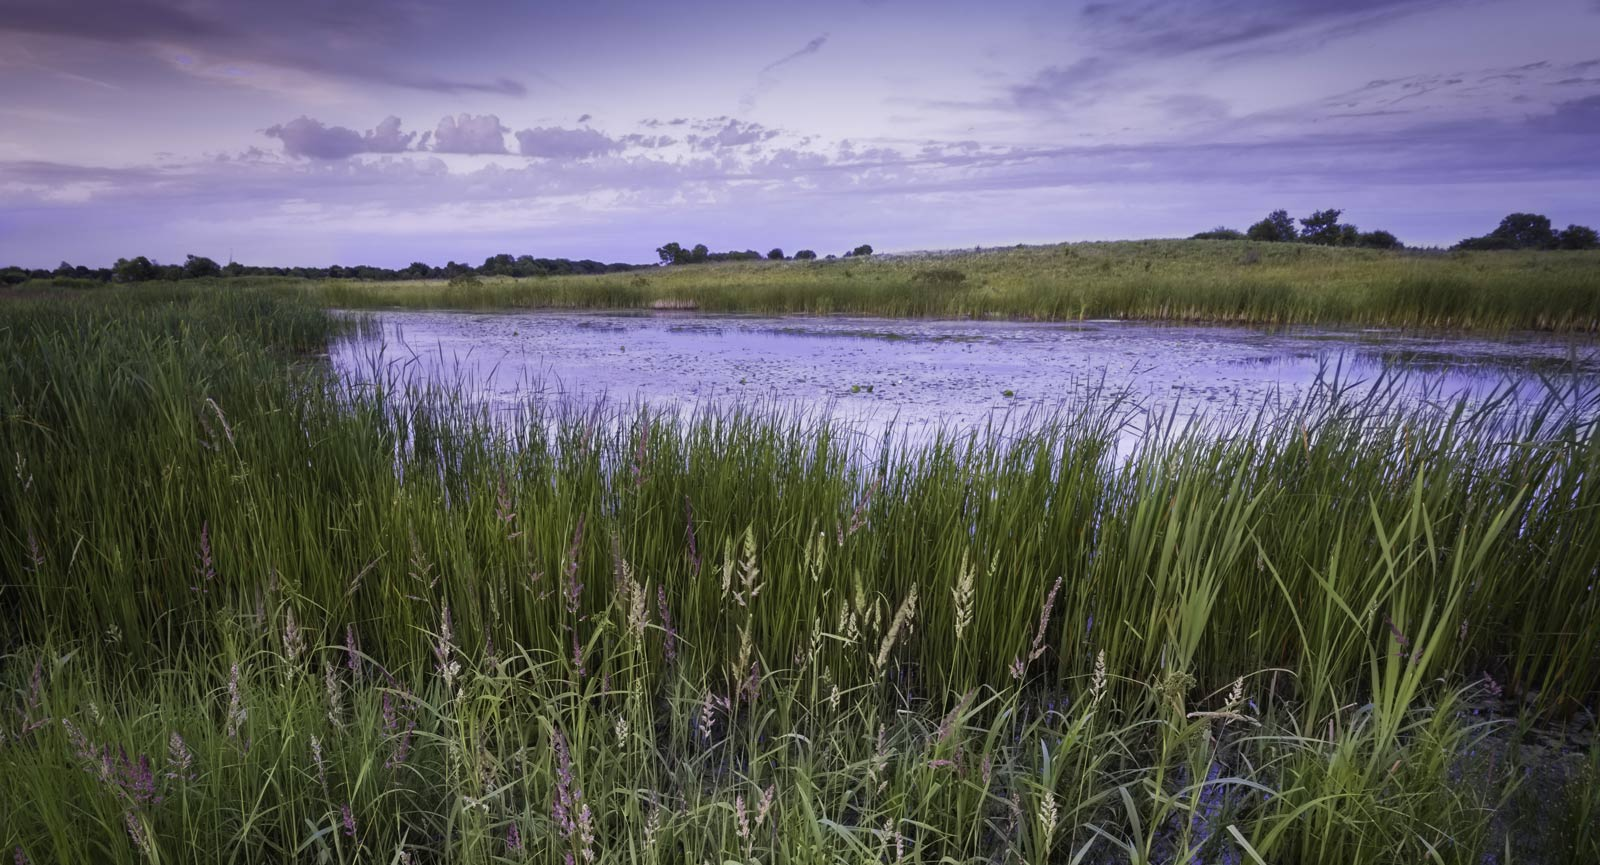 Wetlands with a purple-grey sky and a green foreground.